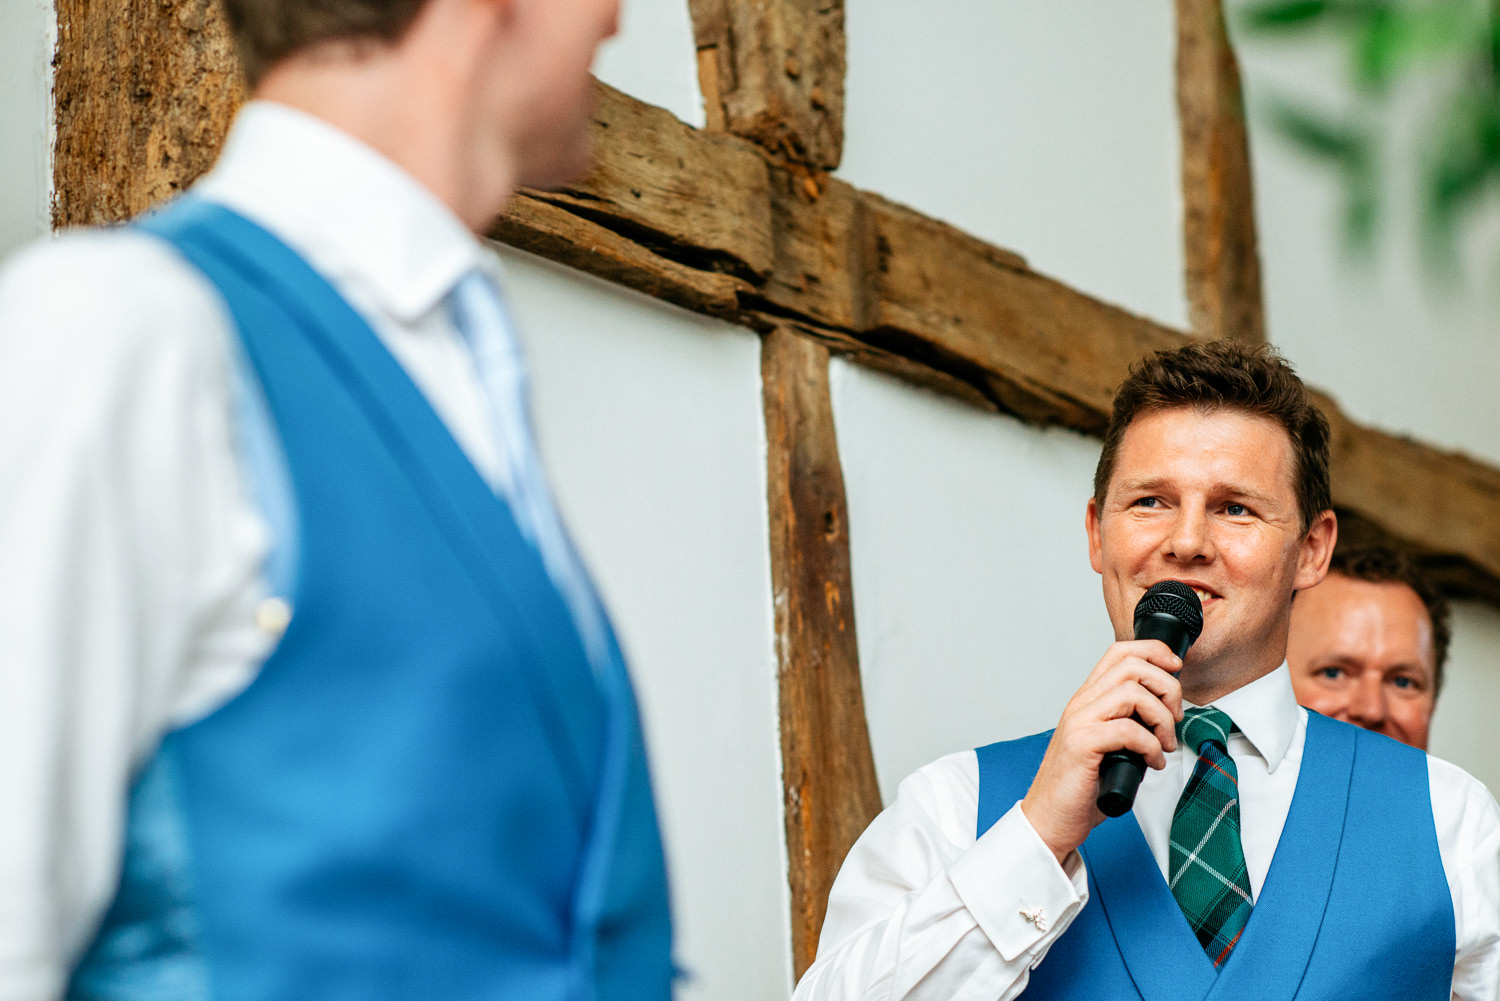 speeches in the barn at Loseley Park